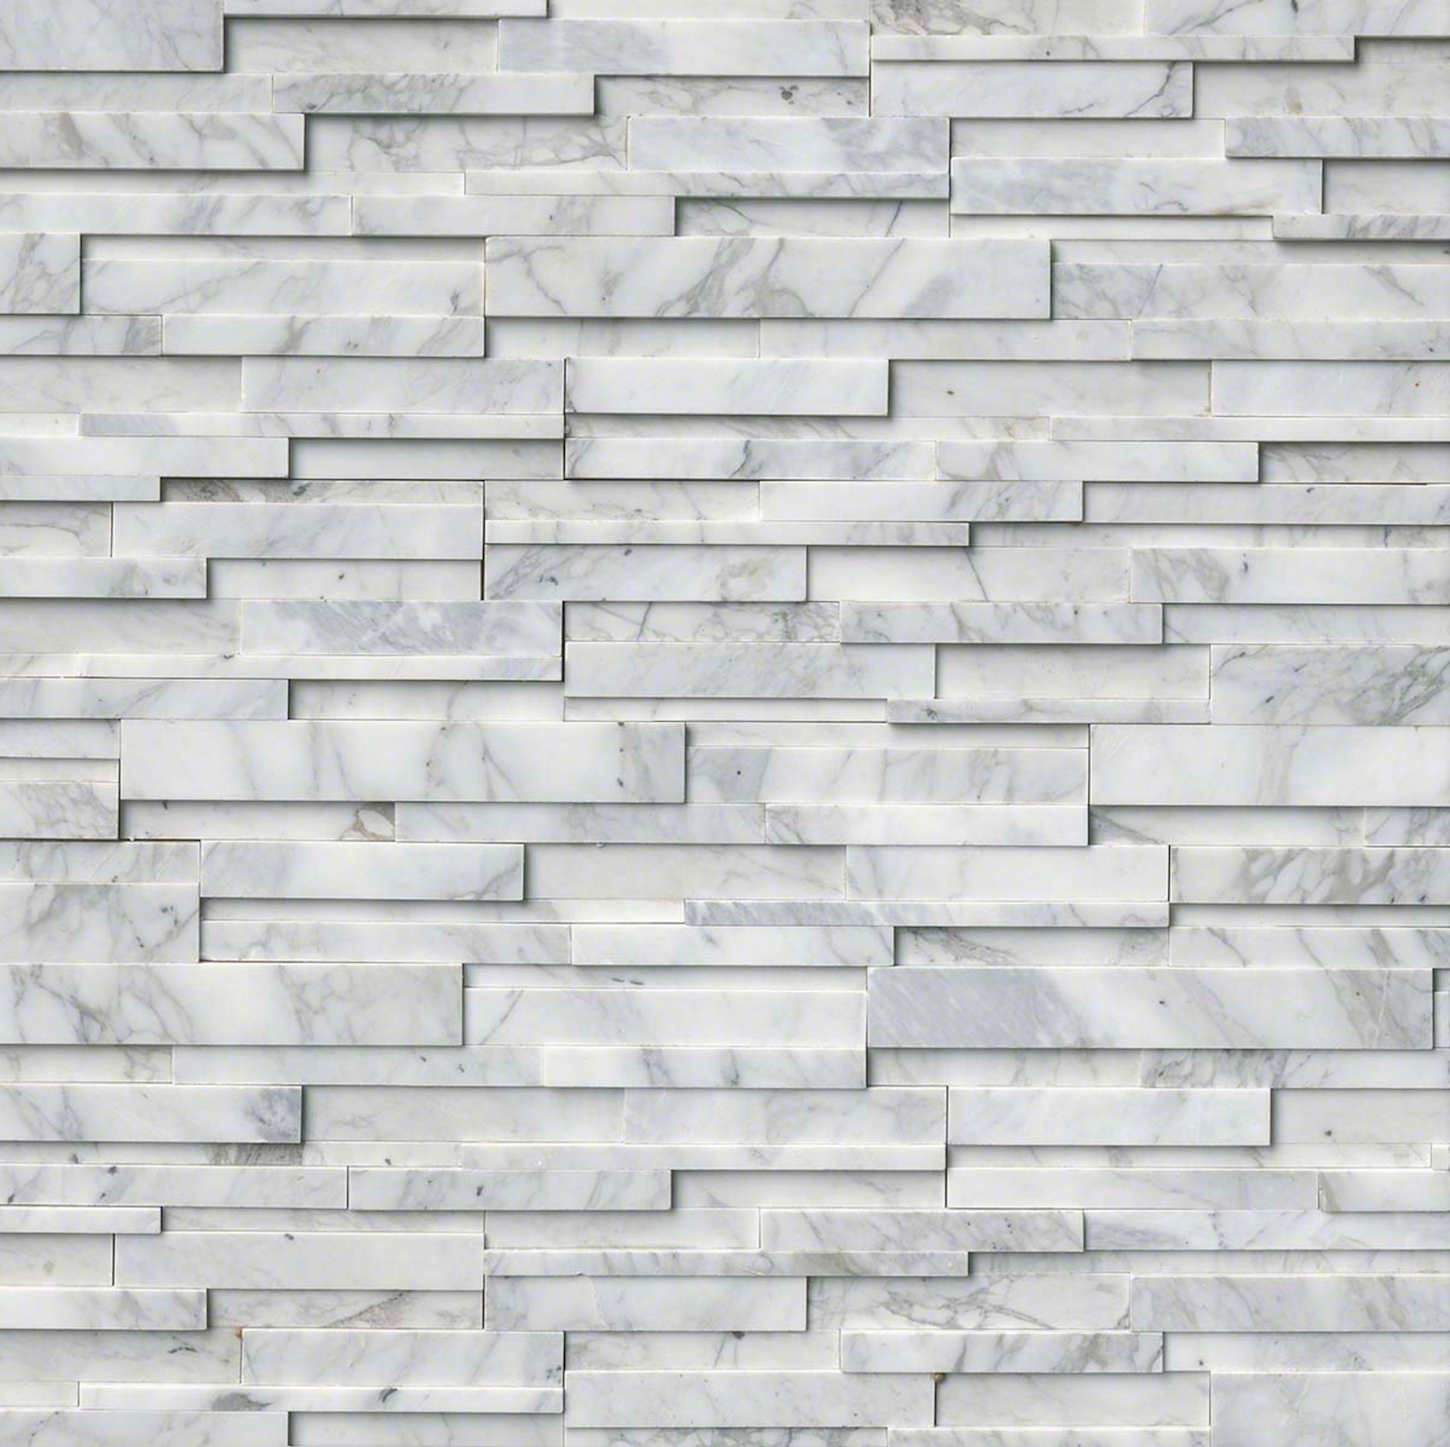 M S International Inc Introduces New Stacked Stone Colors